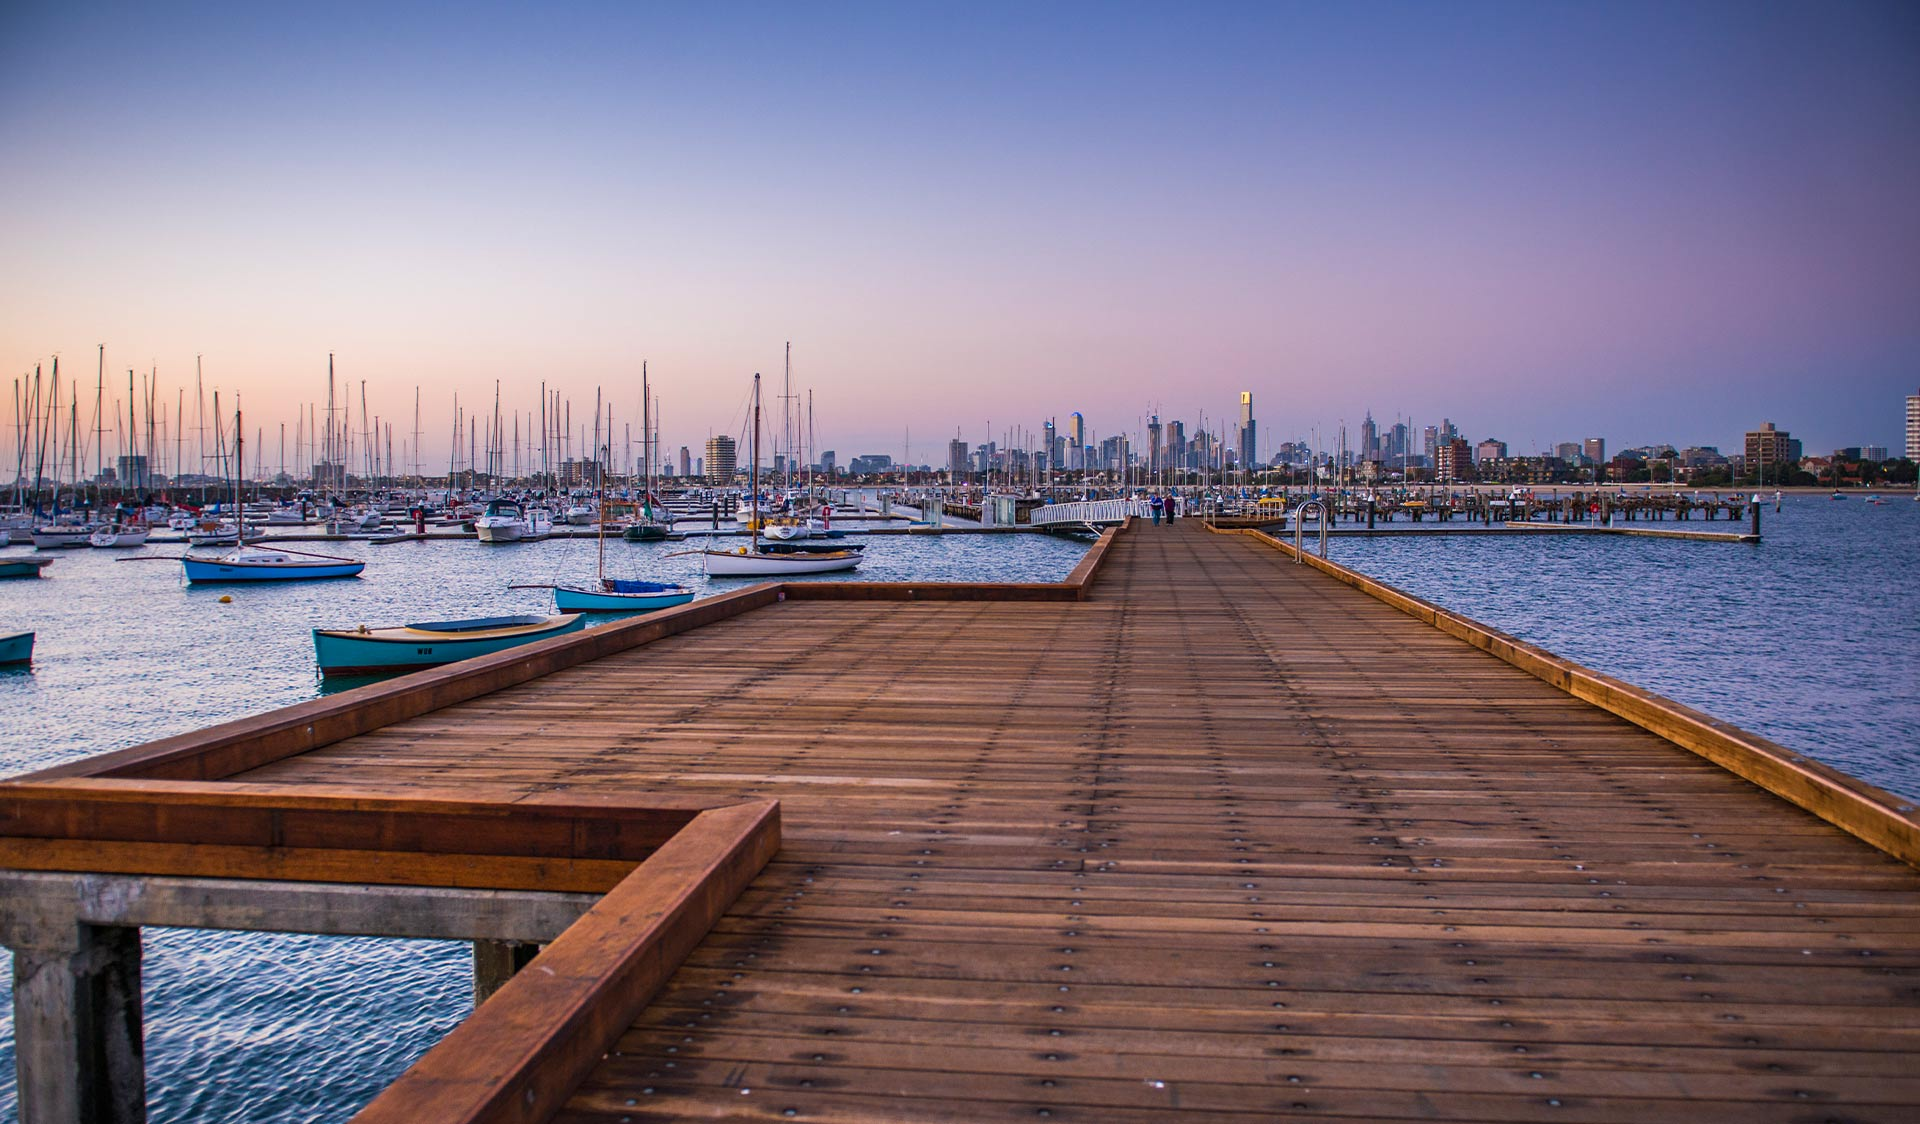 Sunset on St Kilda Pier with views of the CBD in the background.